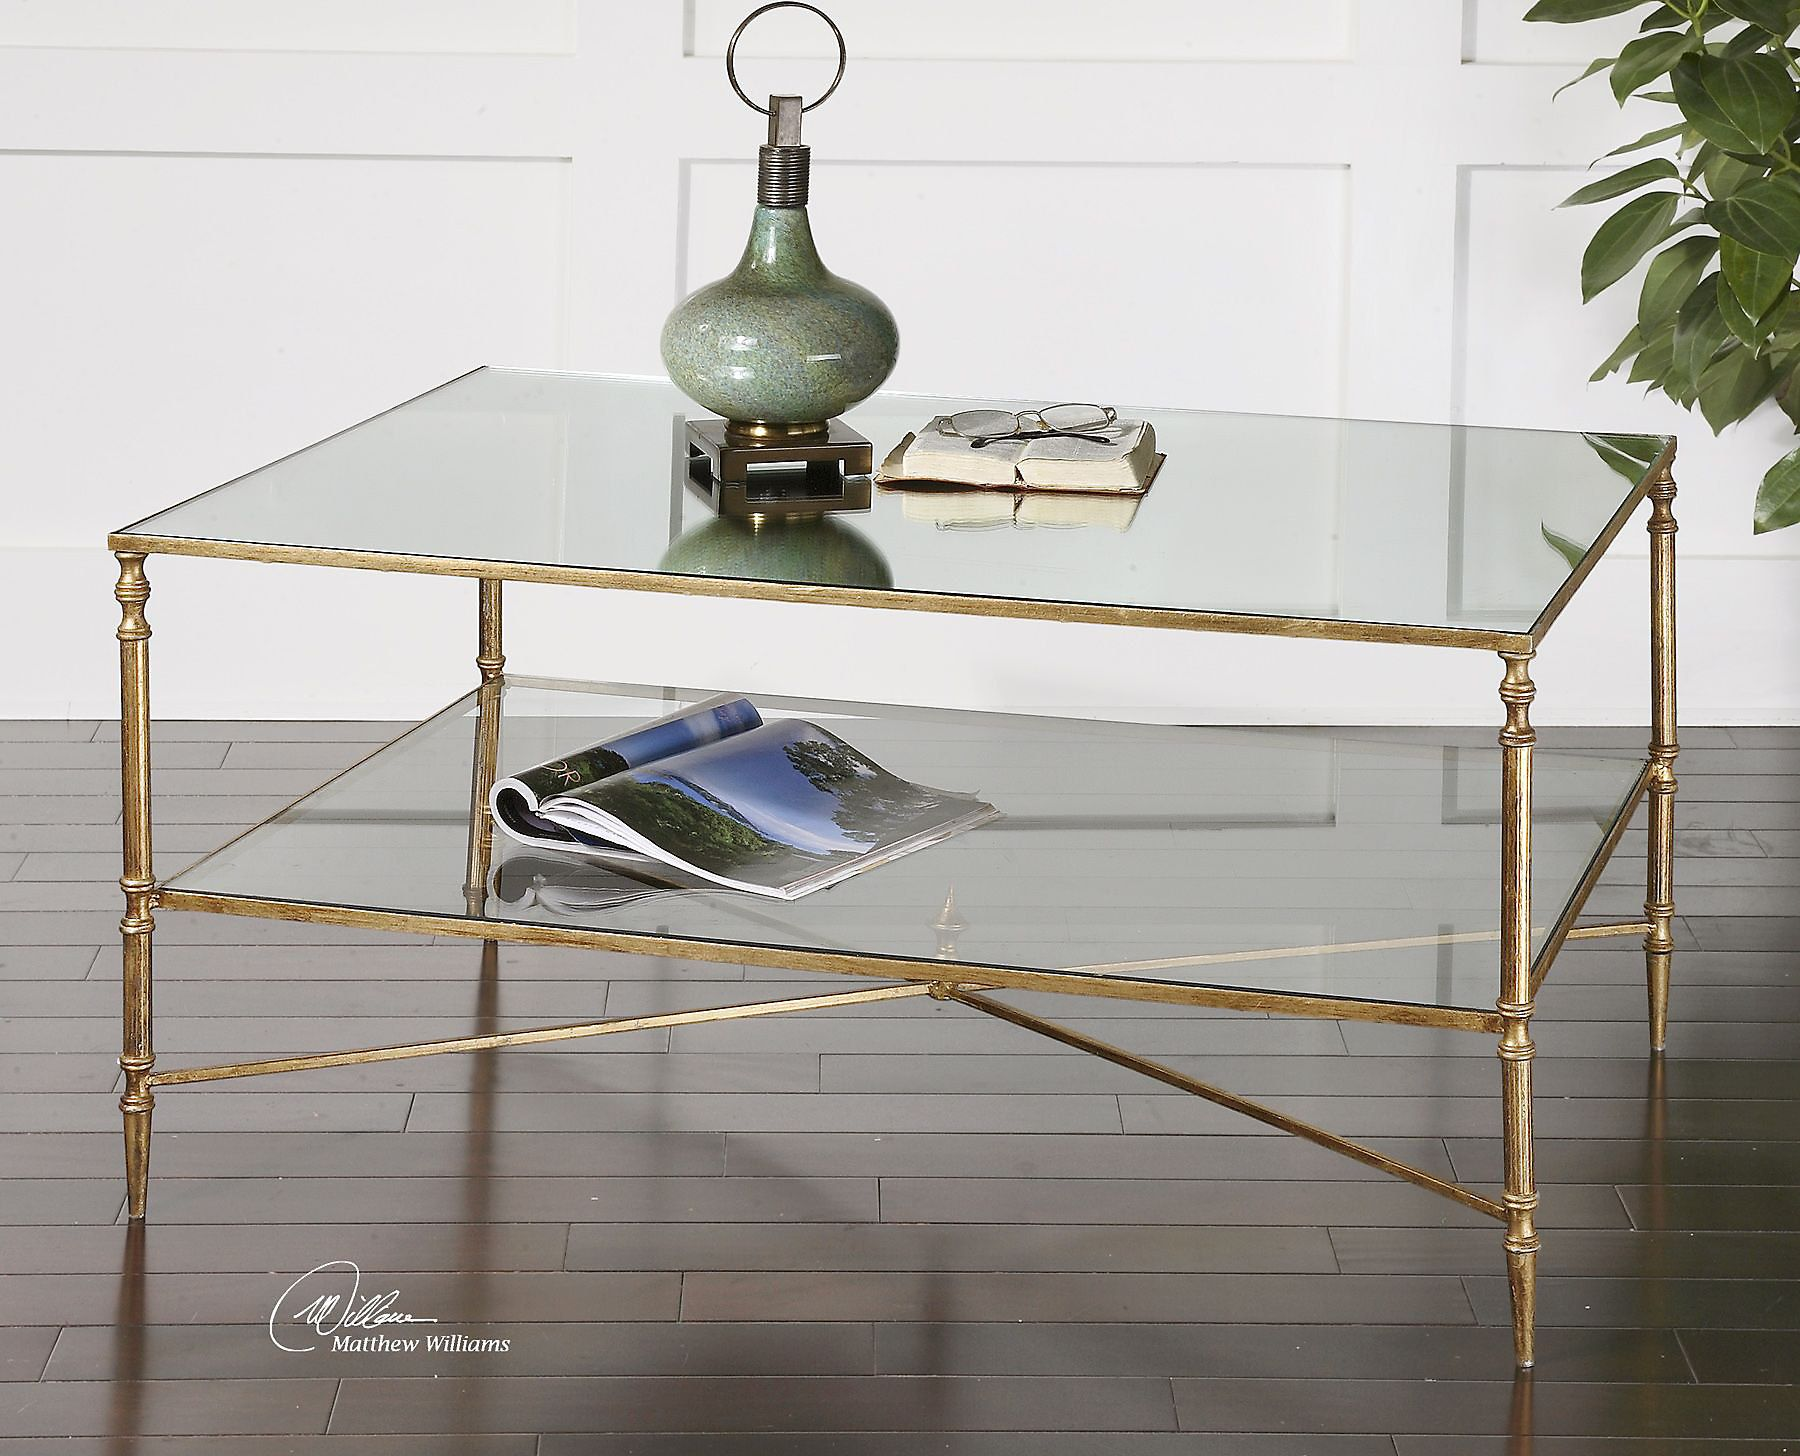 For Uttermost Henzler Mirrored Gl Coffee Table And Other Living Room Tables At Alyson Jon Interiors In Houston Beaumont Tx